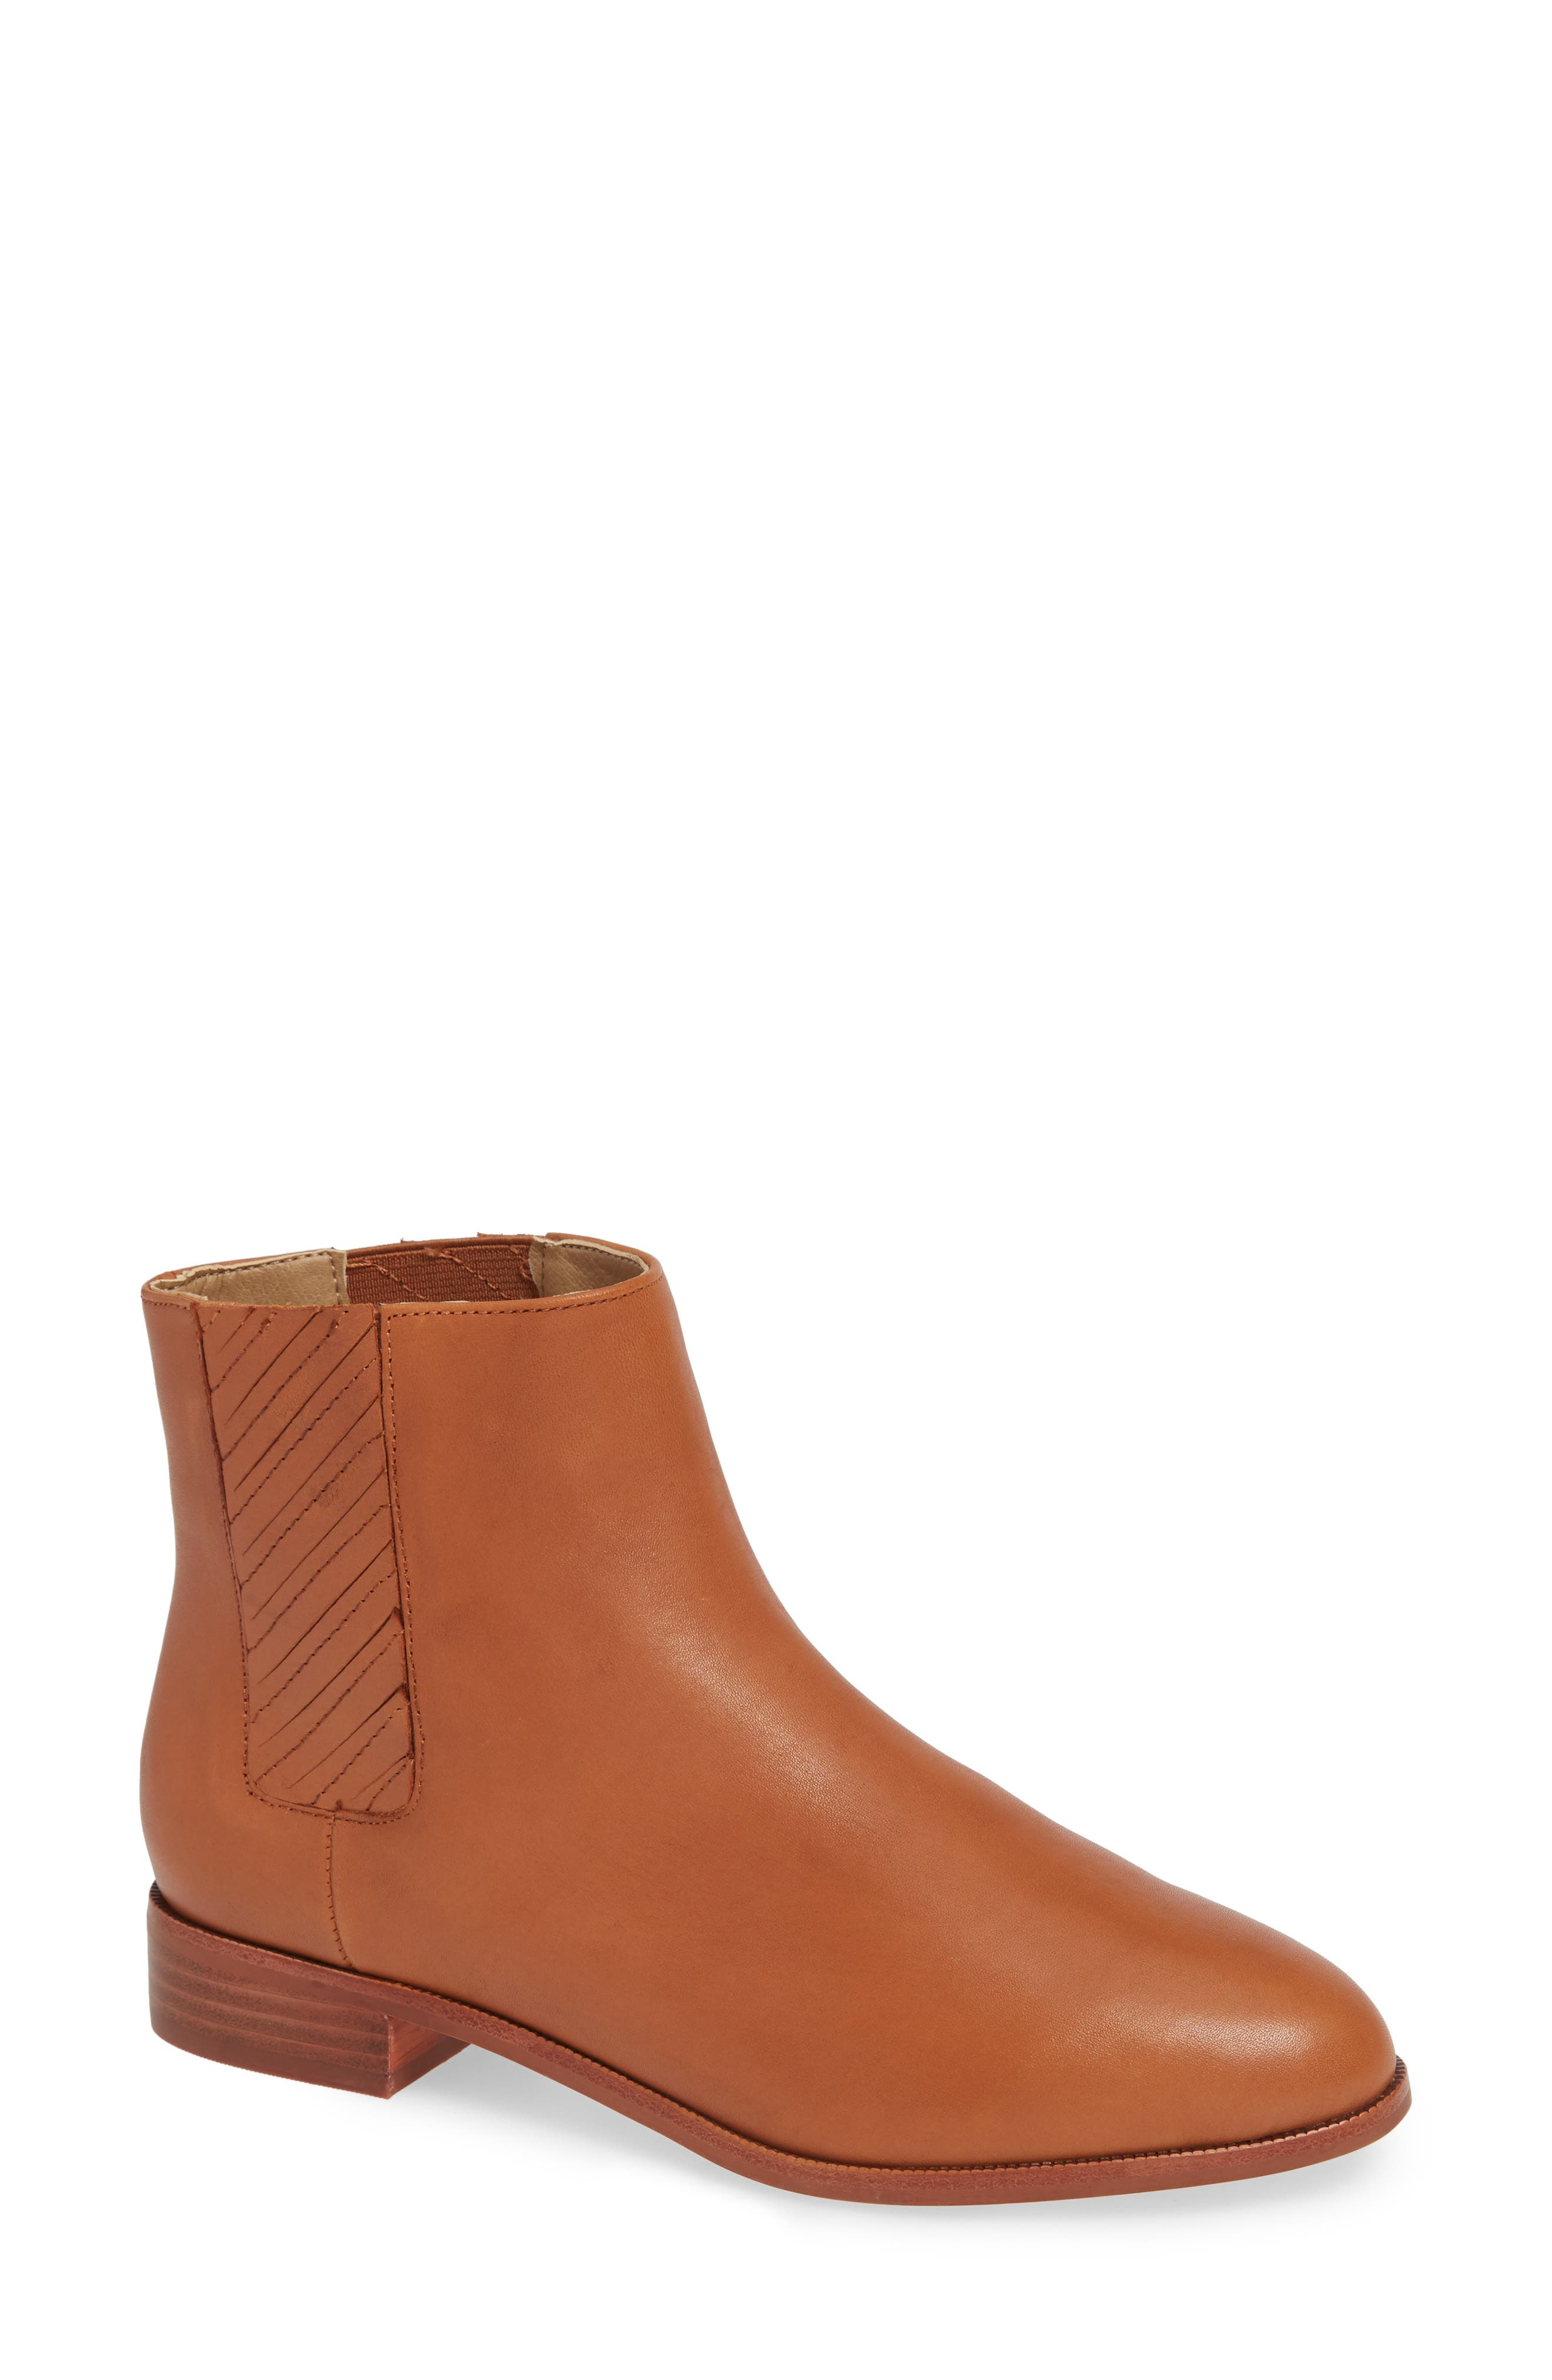 M4D3 Remse Chelsea Bootie, Brown